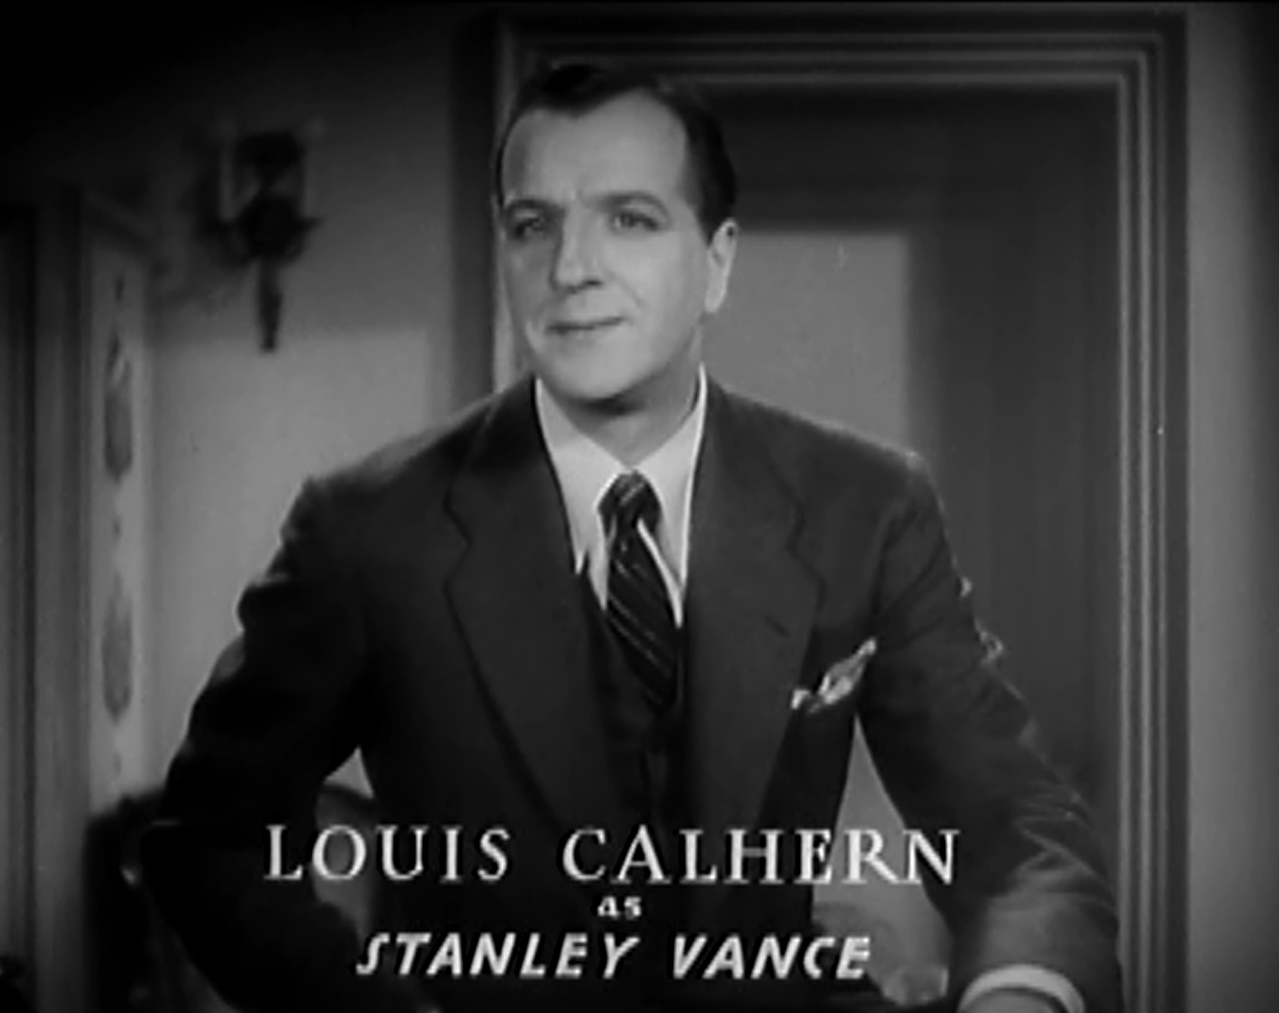 louis calhern death